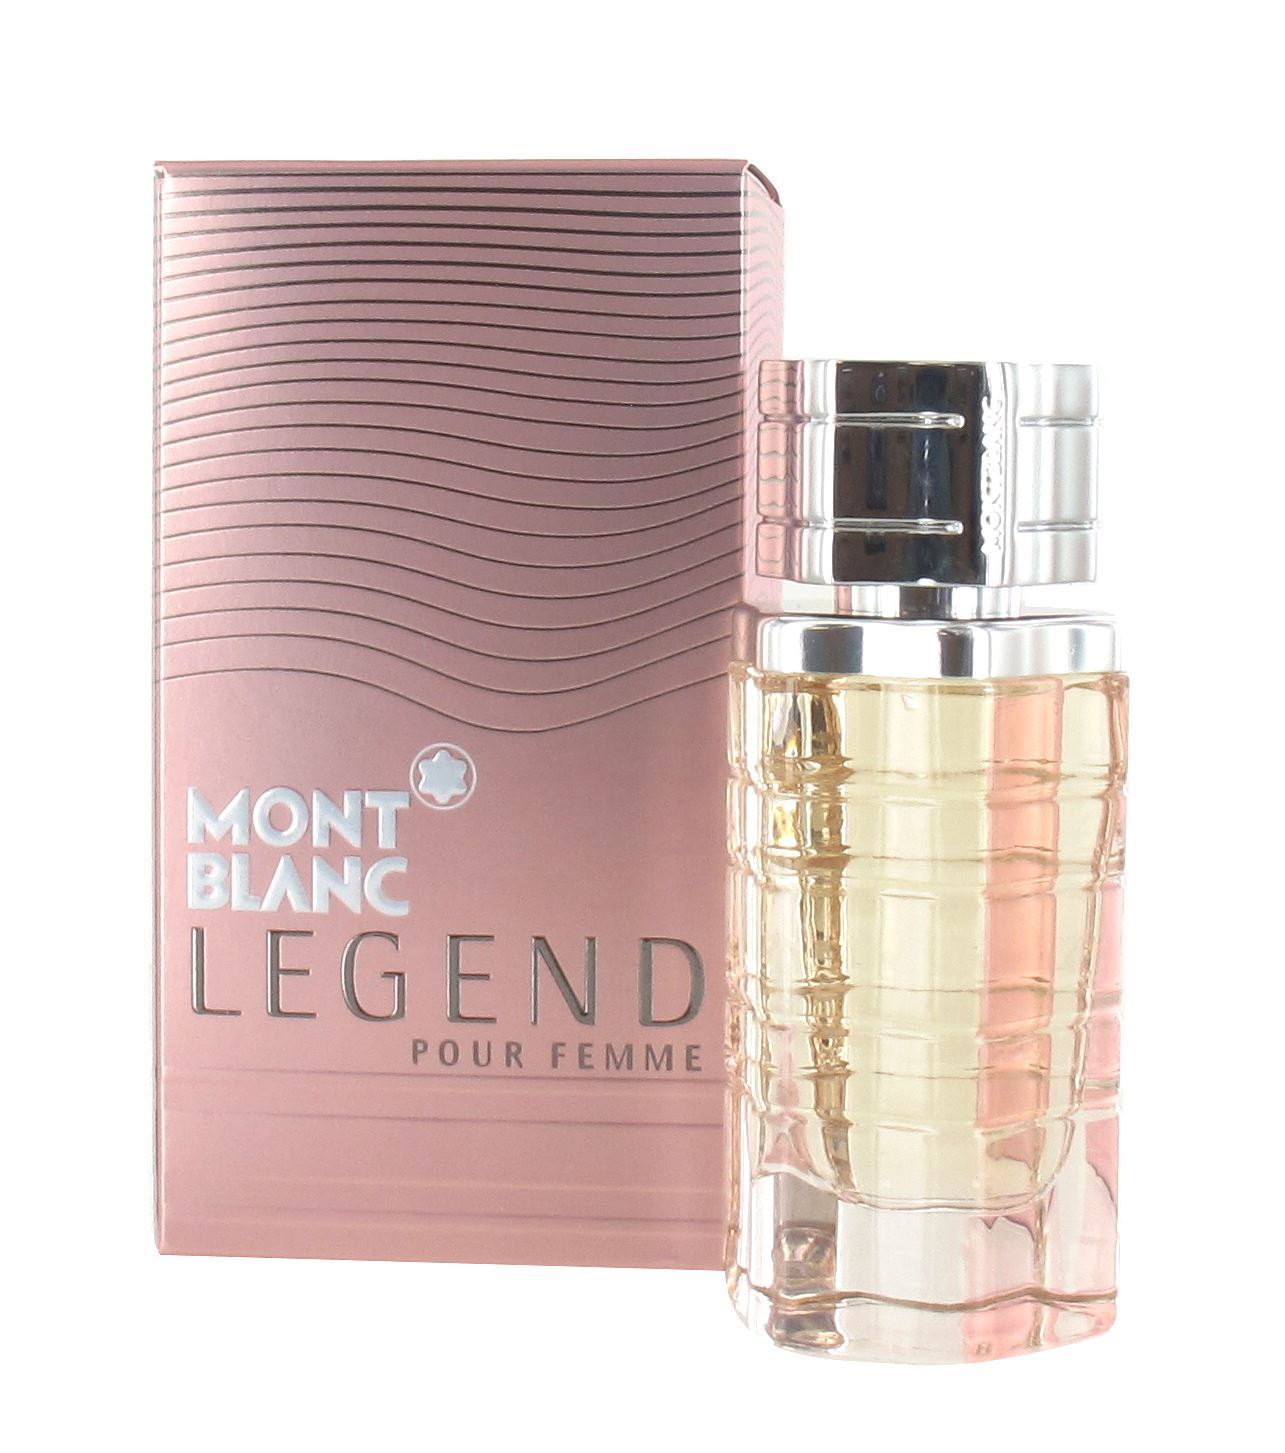 mont blanc legend pour femme 30ml eau de parfum spray for women ebay. Black Bedroom Furniture Sets. Home Design Ideas